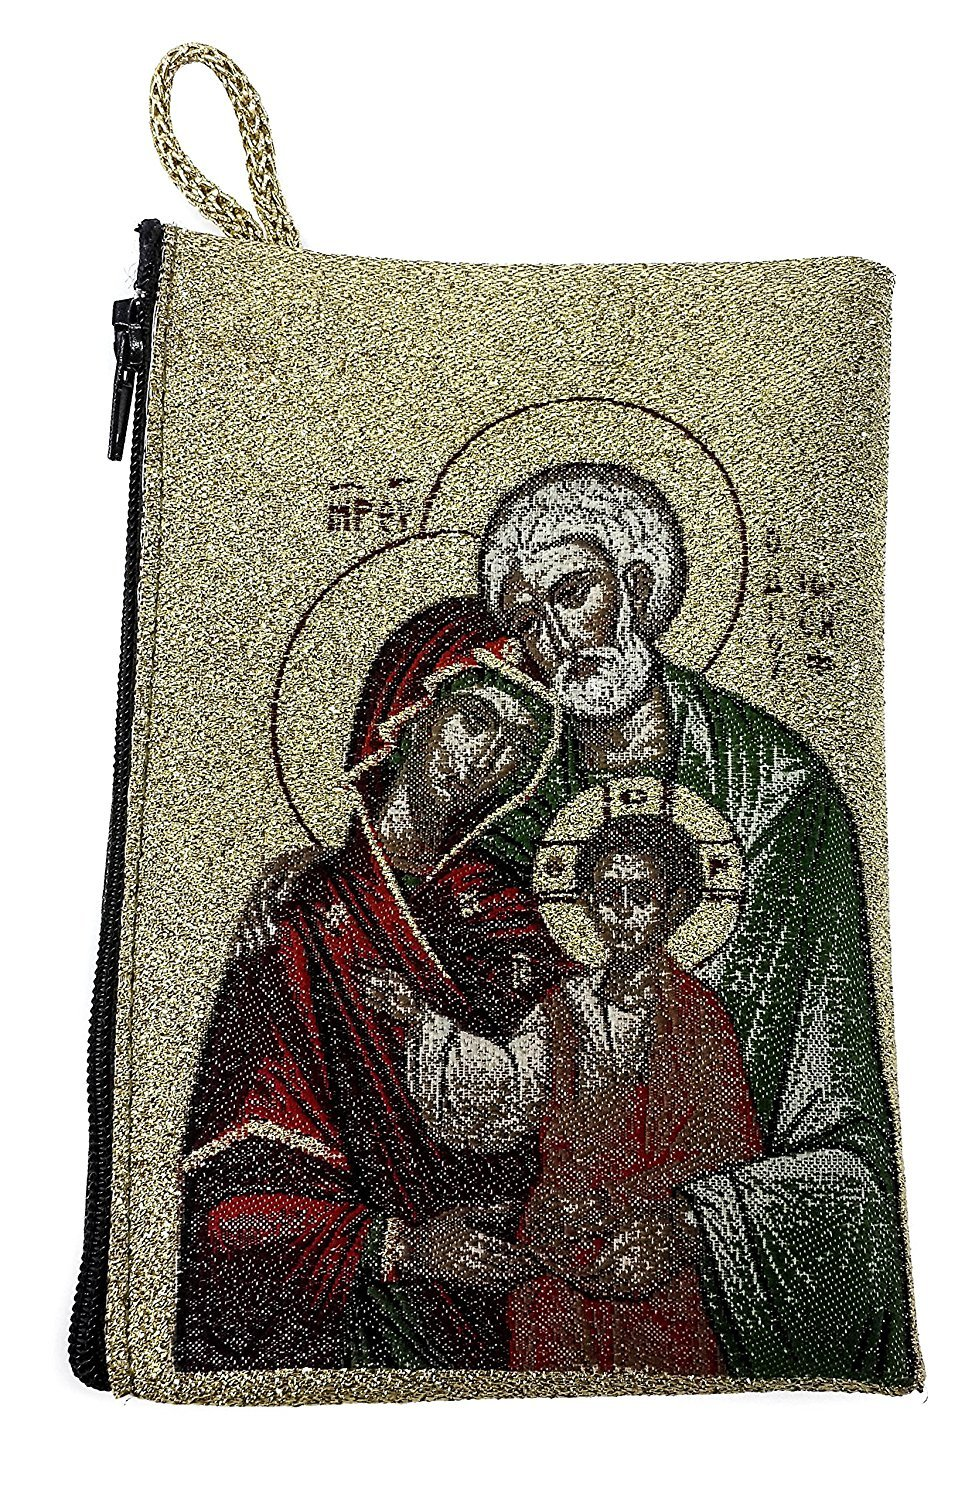 Icon Case Pouch Coin Purses Tapestry Prayer With Holy Family 5.7'' by Holy Land Gifts